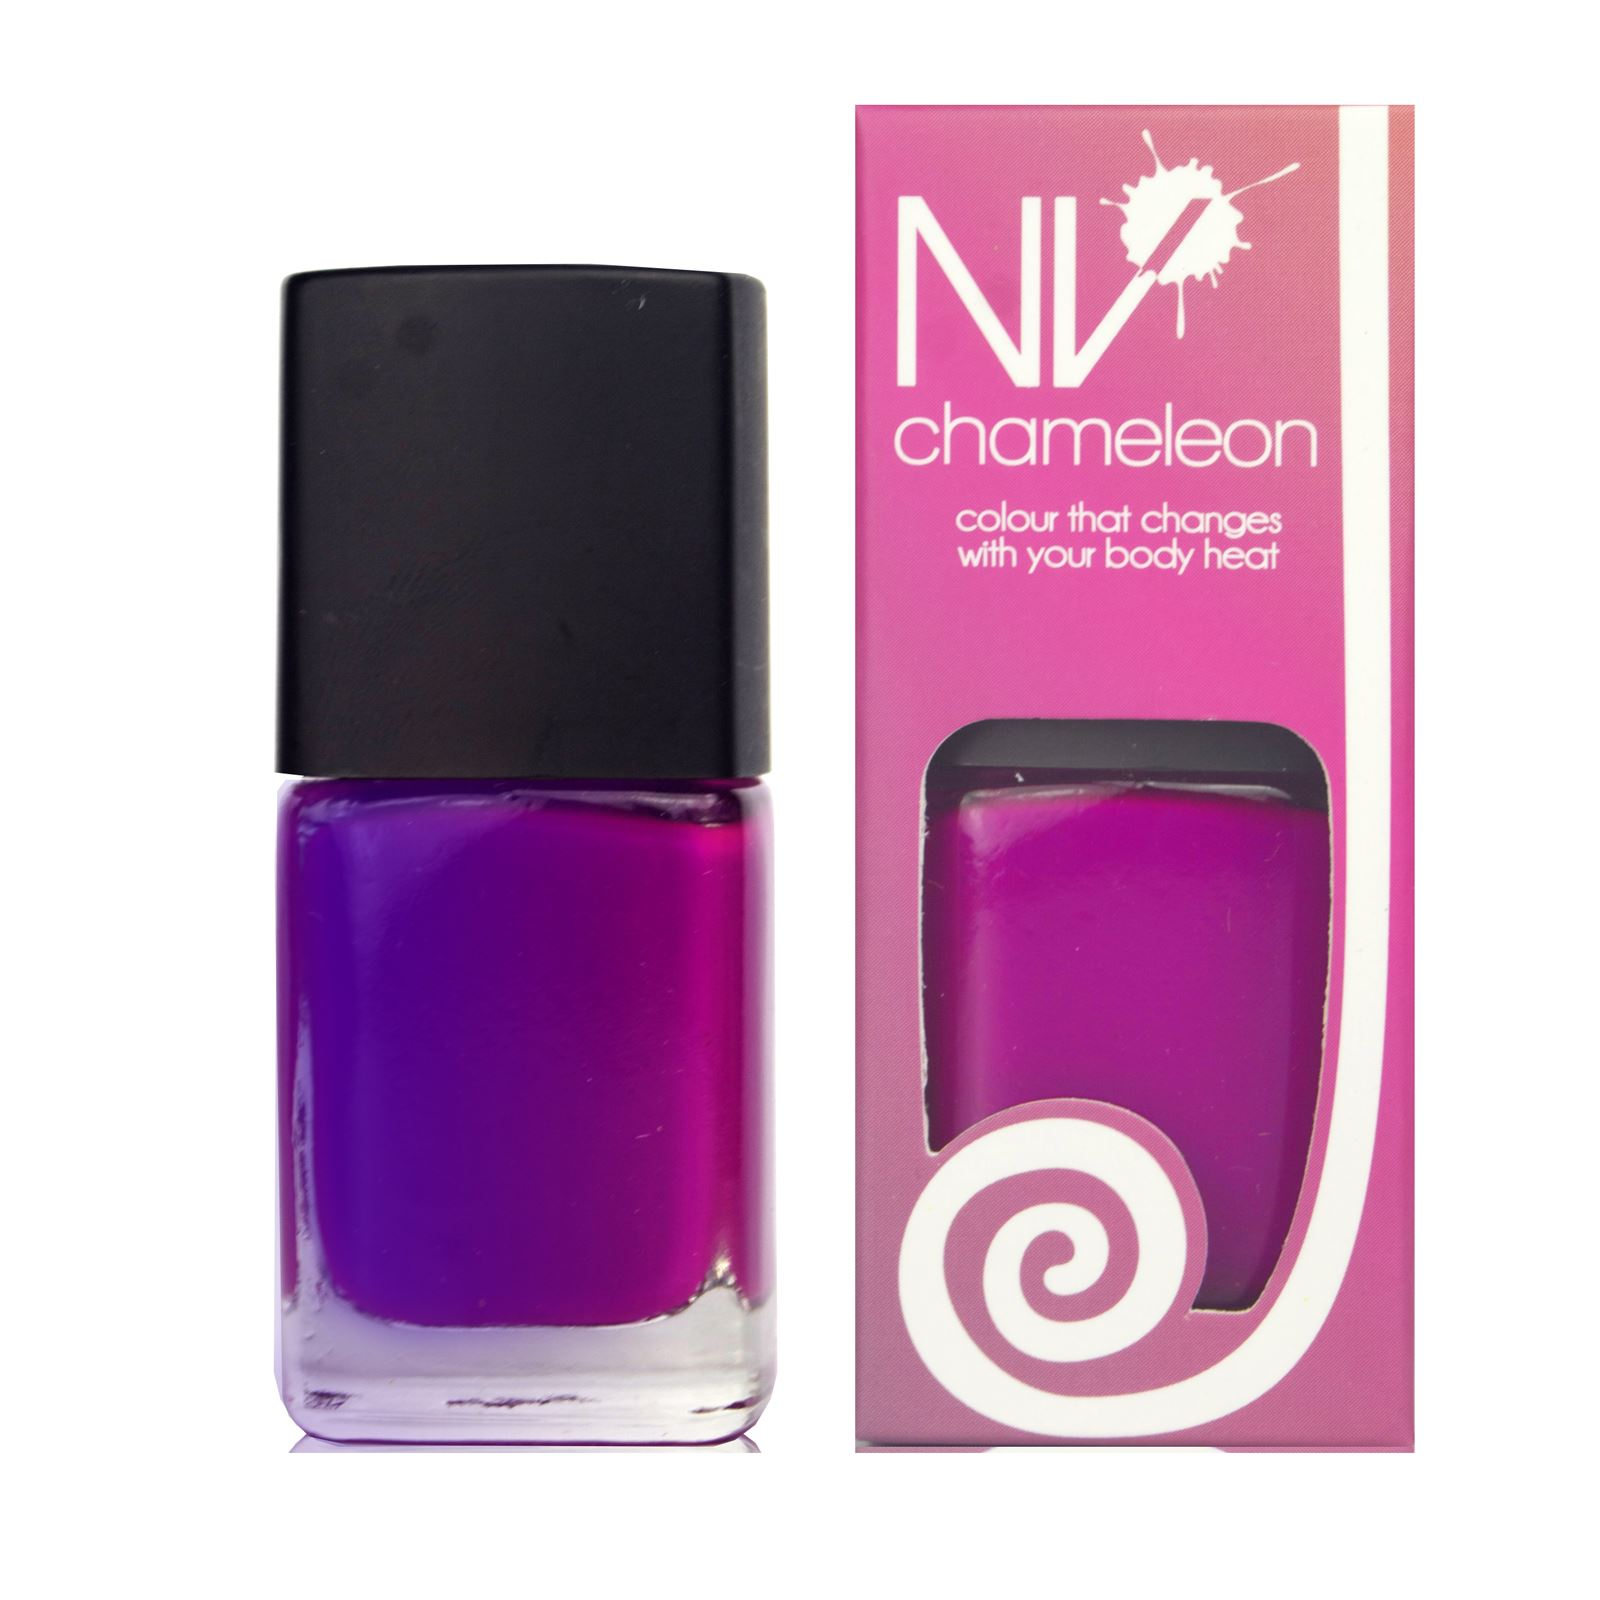 NAIL-VARNISH-NV-COLOUR-CHAMELEON-HEAT-CHANGING-ALL-SHADES-POLISH